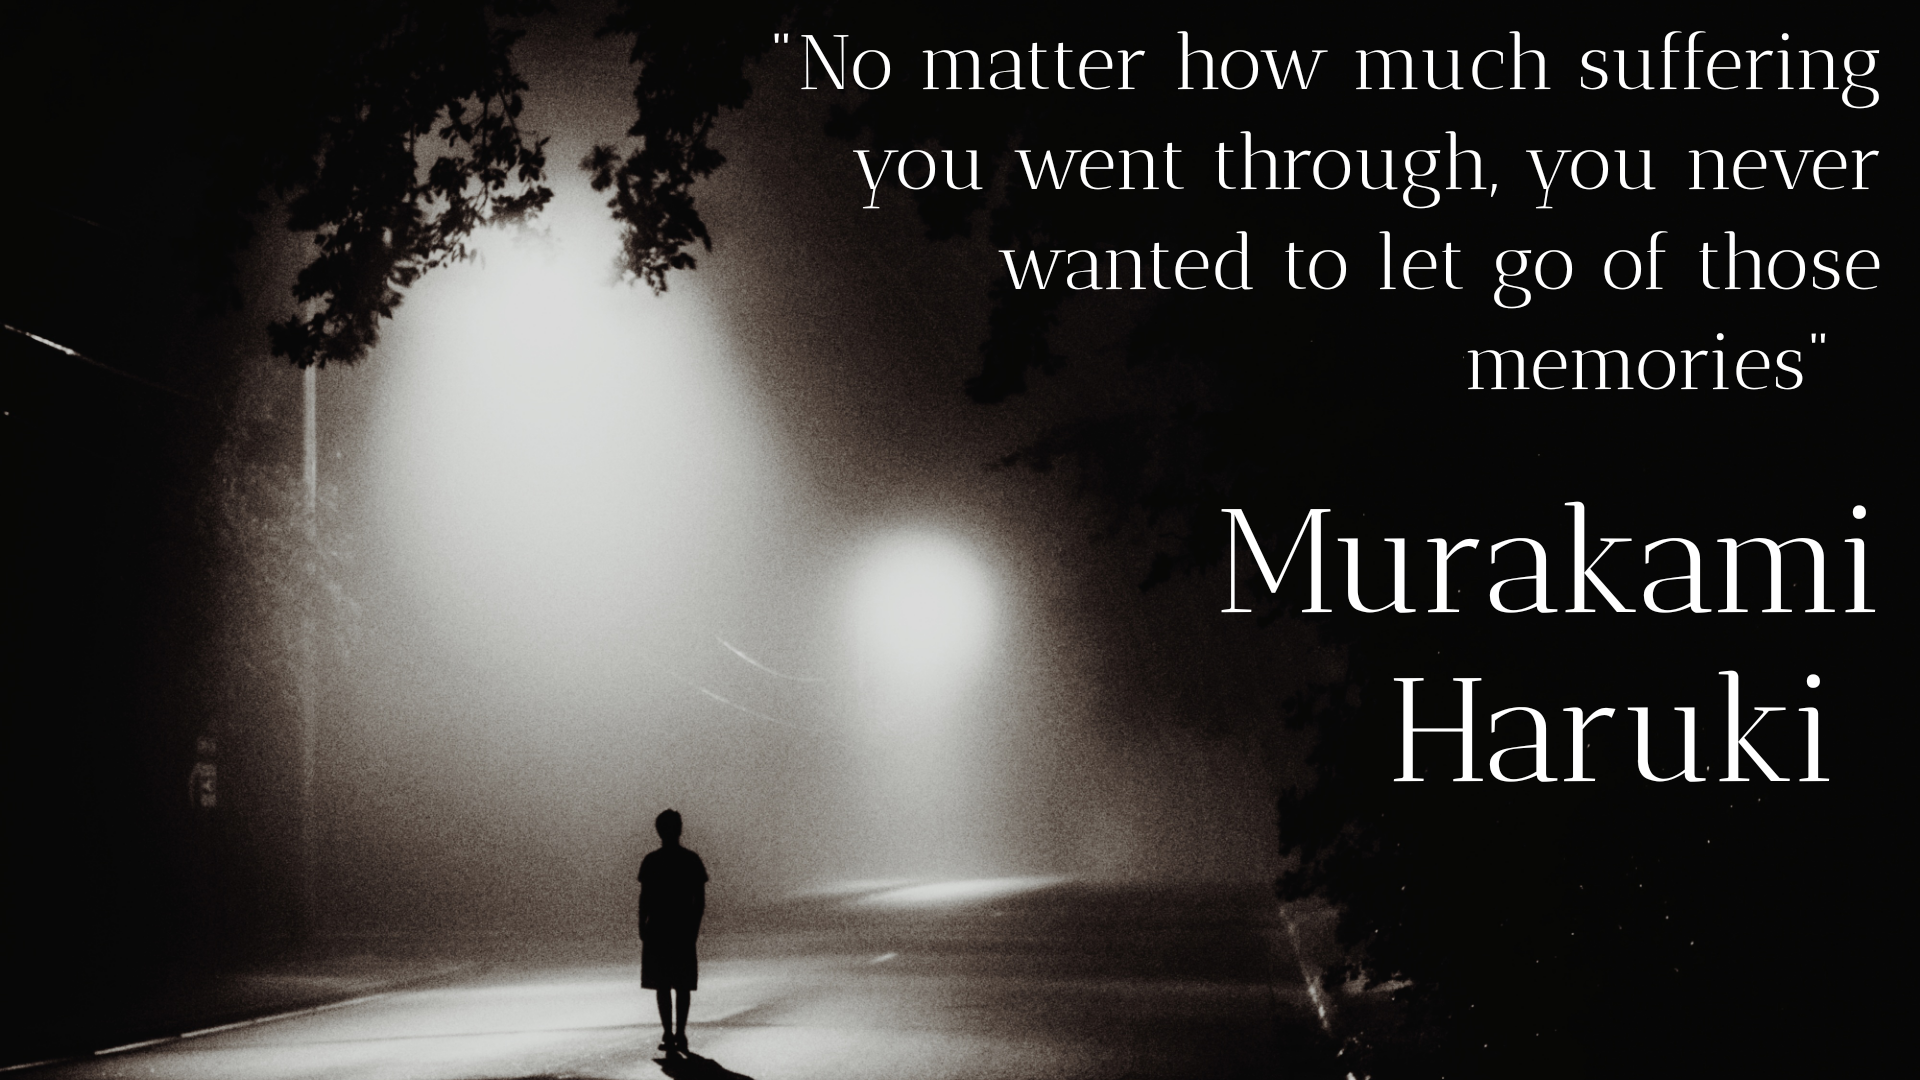 """you never wanted to let go of those memories"" – Haruki Murakami [1920×1080]"